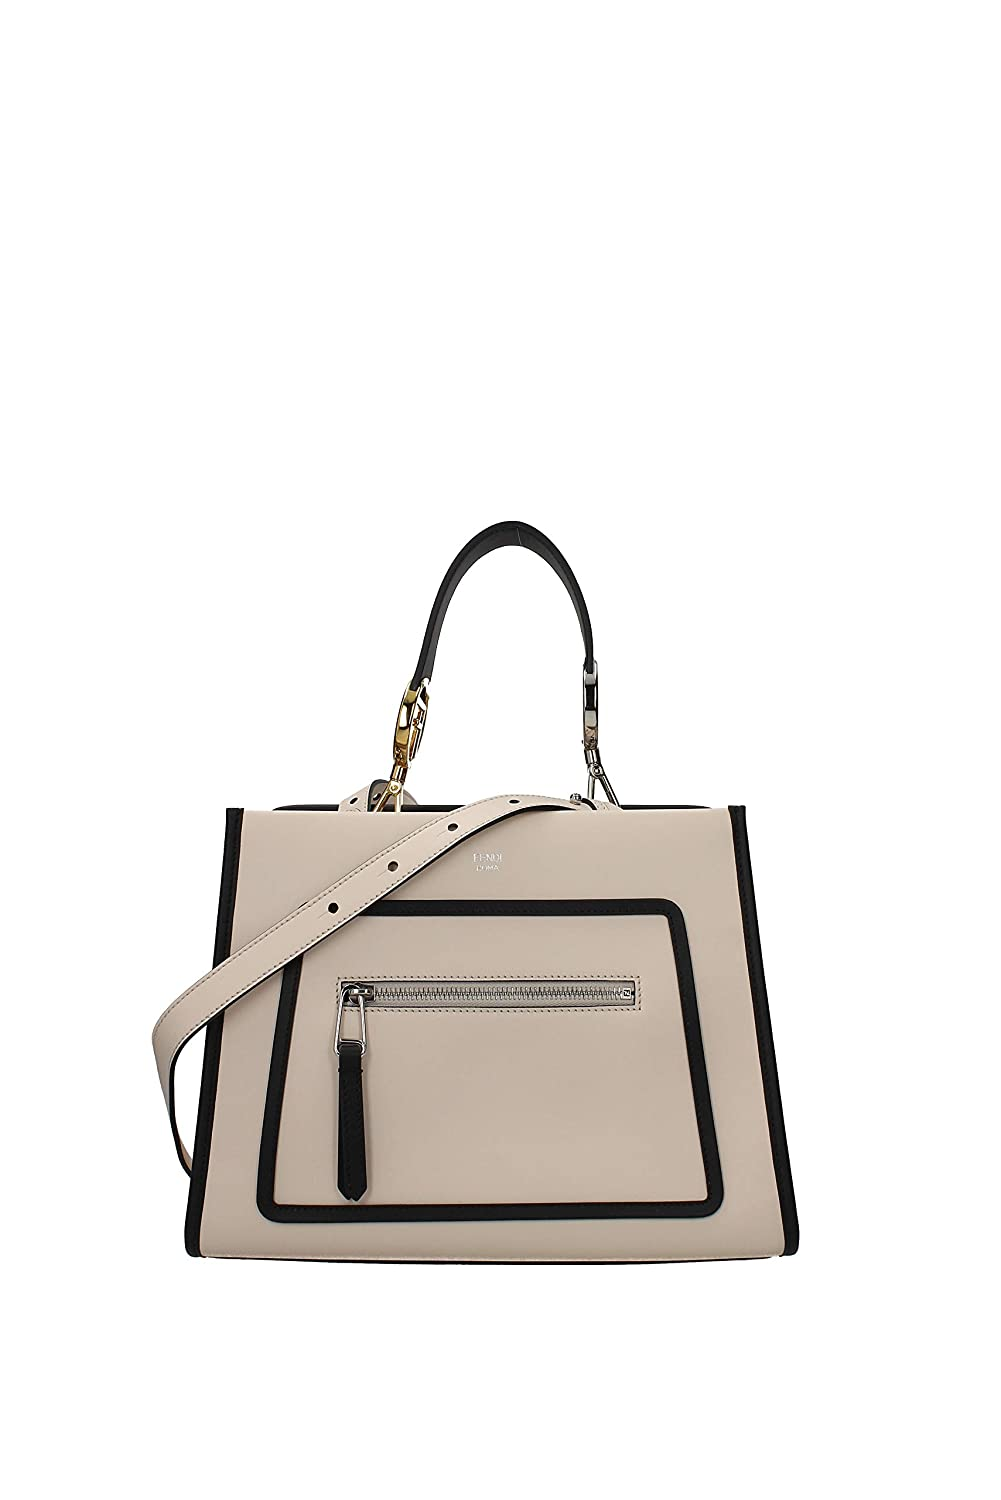 fad99880653 Amazon.com: Fendi Shopping Bag Runaway Calf Camelia Cream Beige and Black  Leather Shopping tote Handbag w Palladium Hardware 8BH344: Shoes